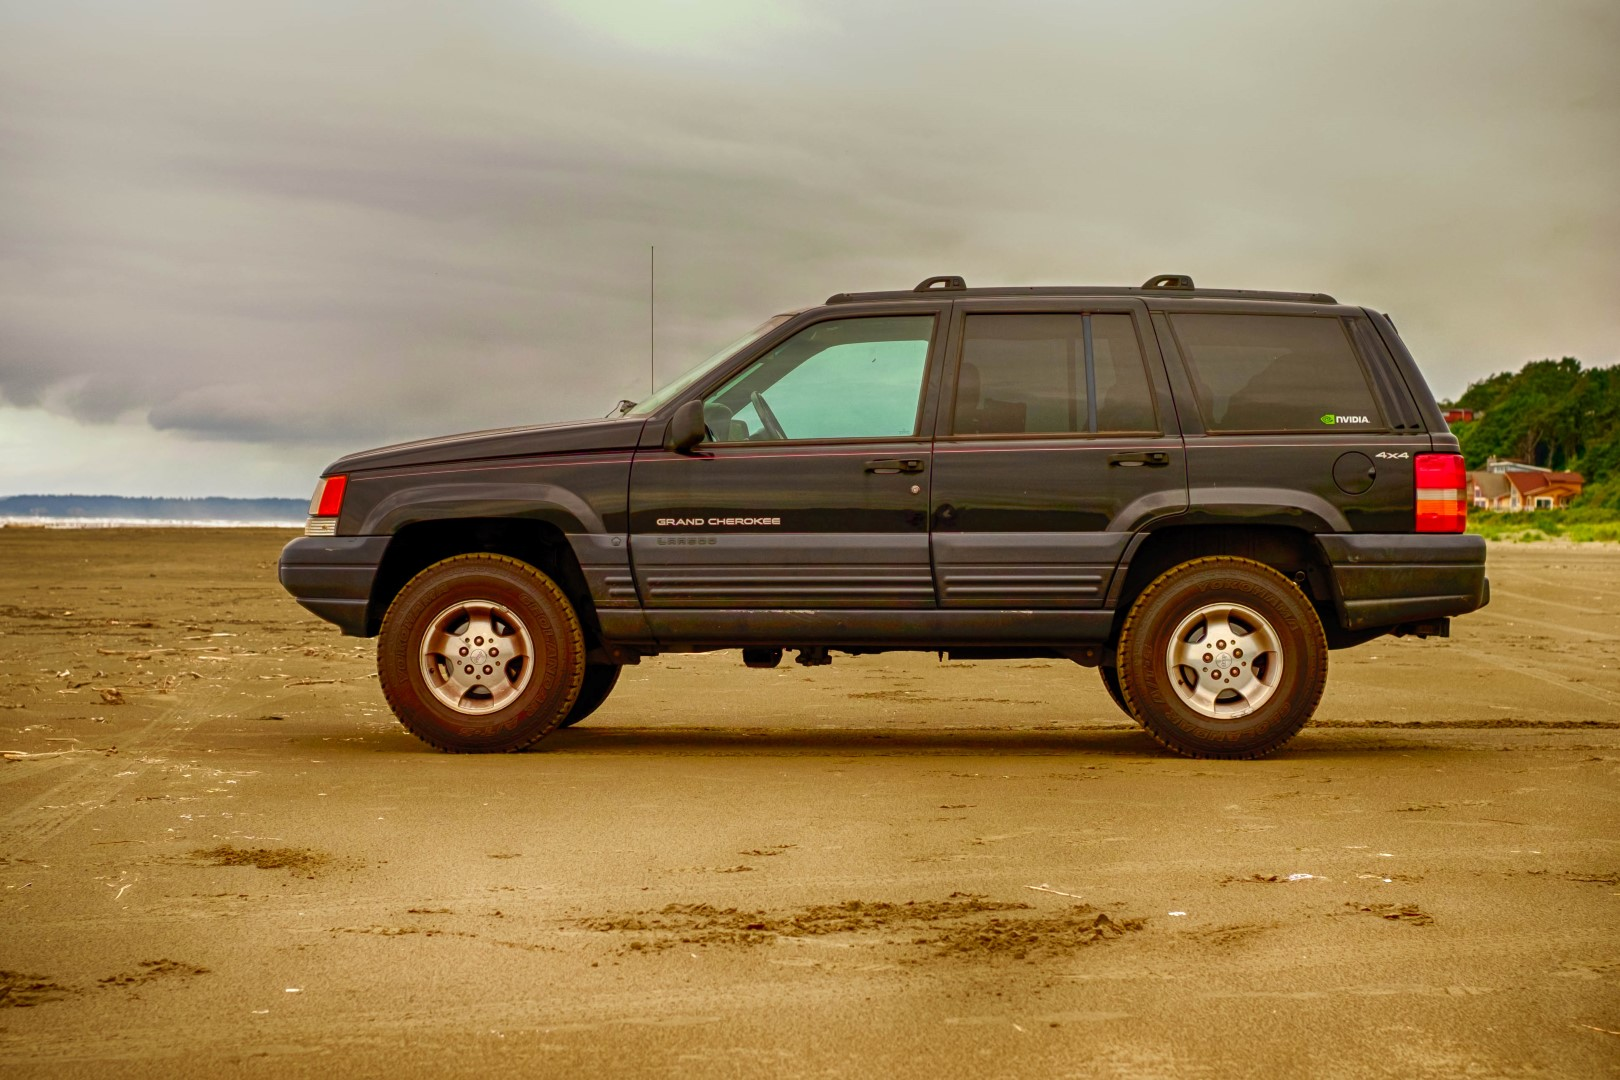 My lifted Jeep Grand Cherokee on the beach.